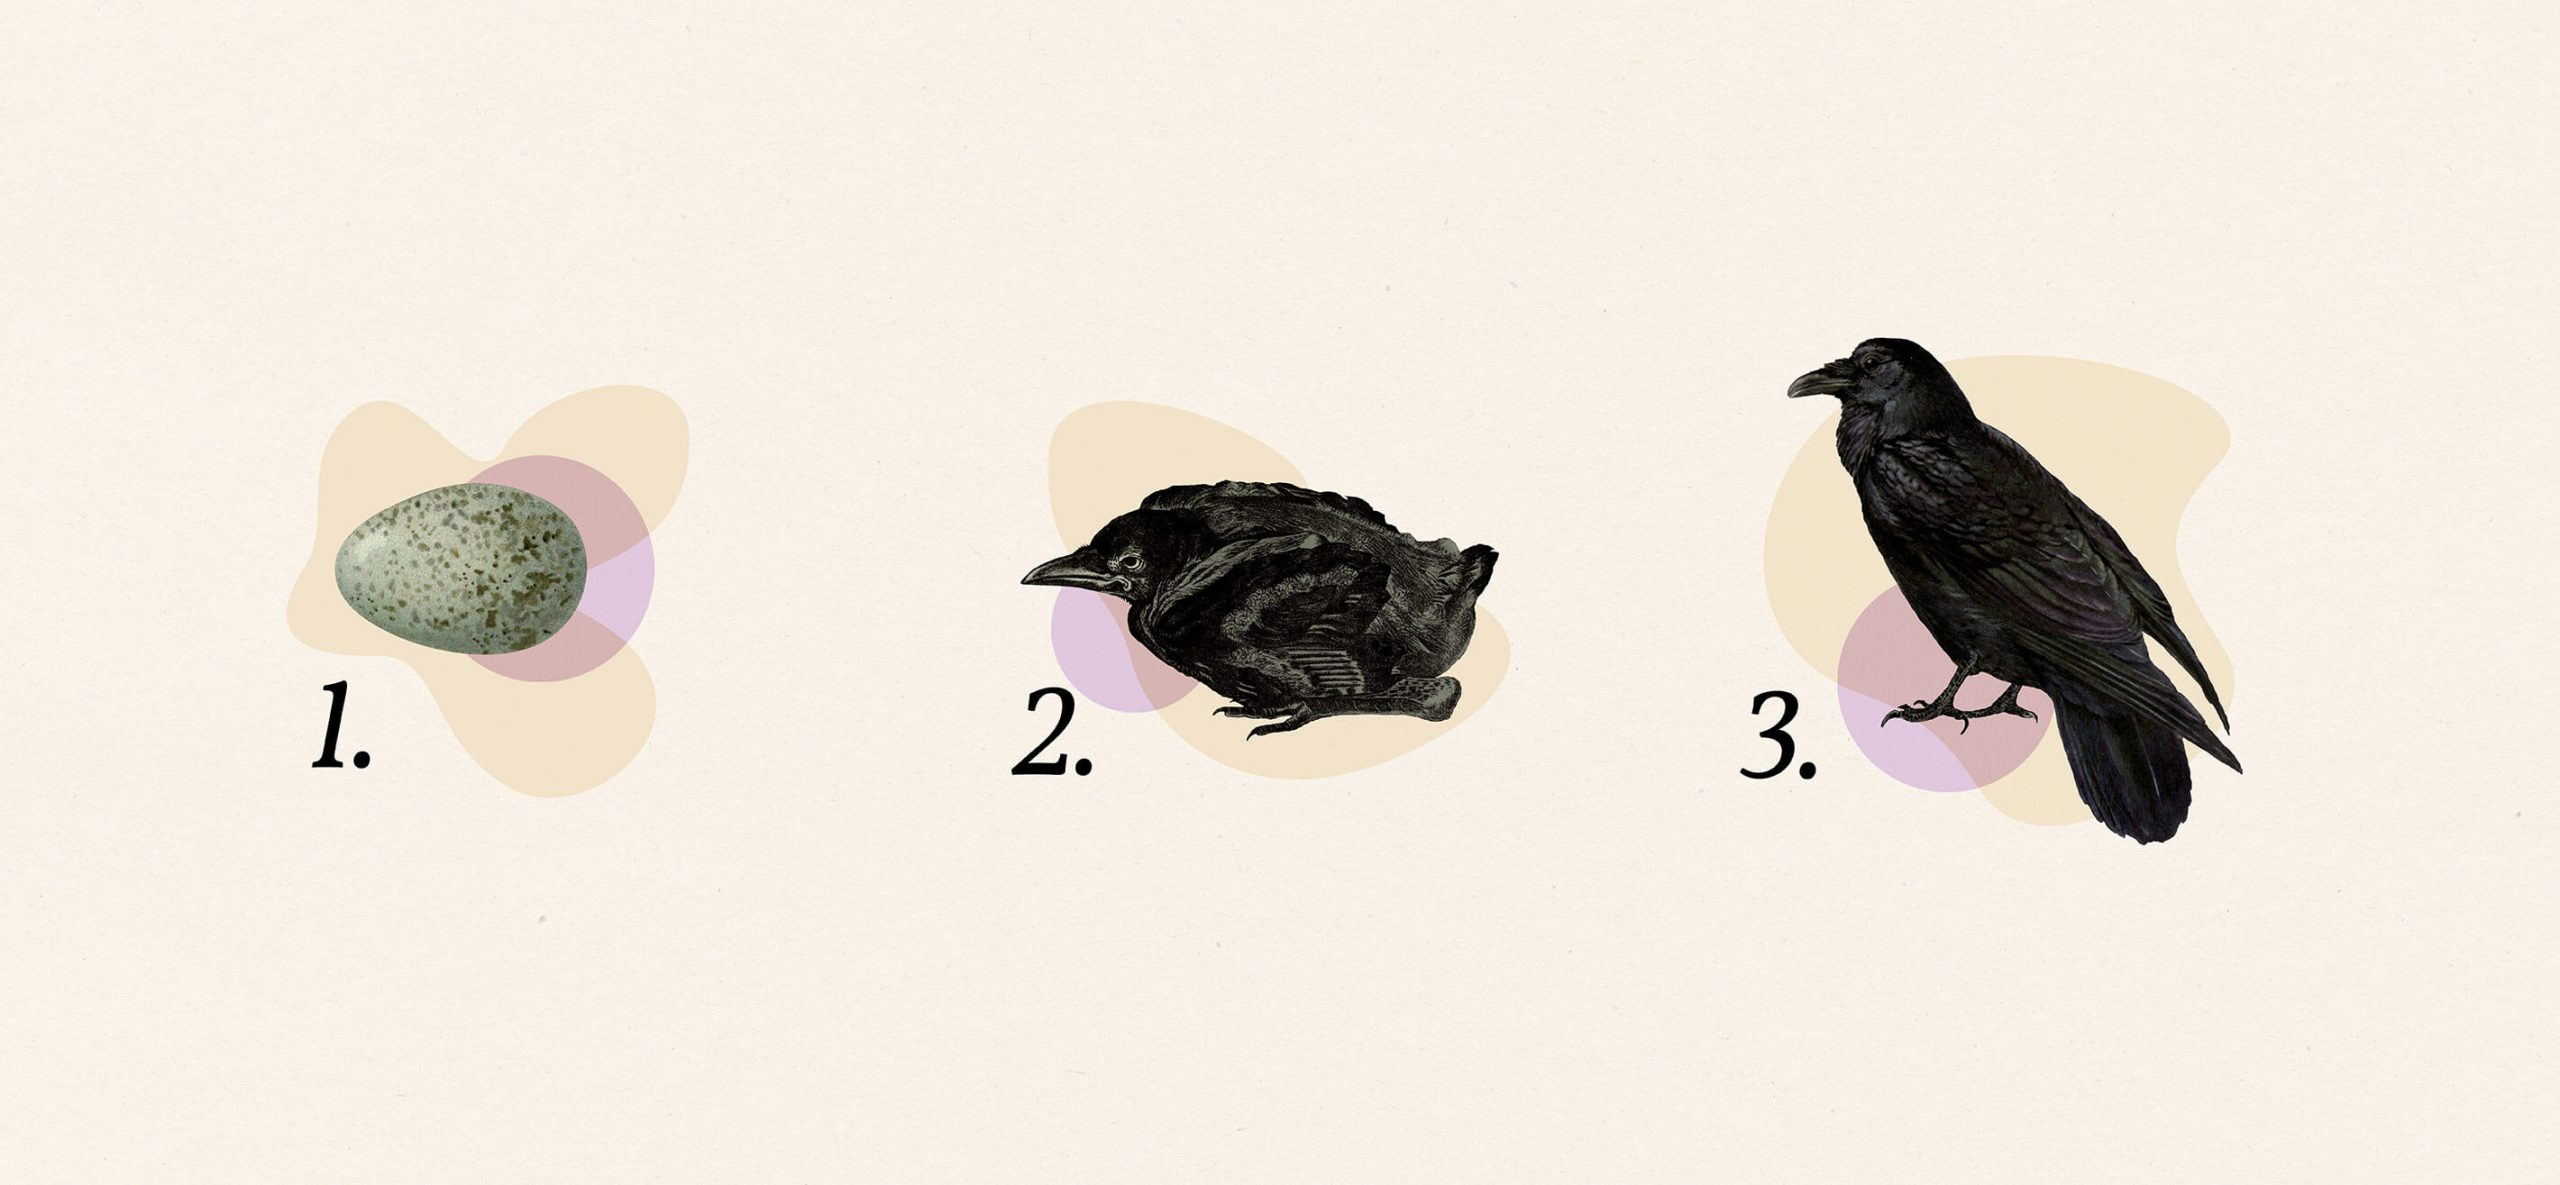 vintage illustrations used to create a 1-2-3 process graphic showing an egg, a hatchling and a raven